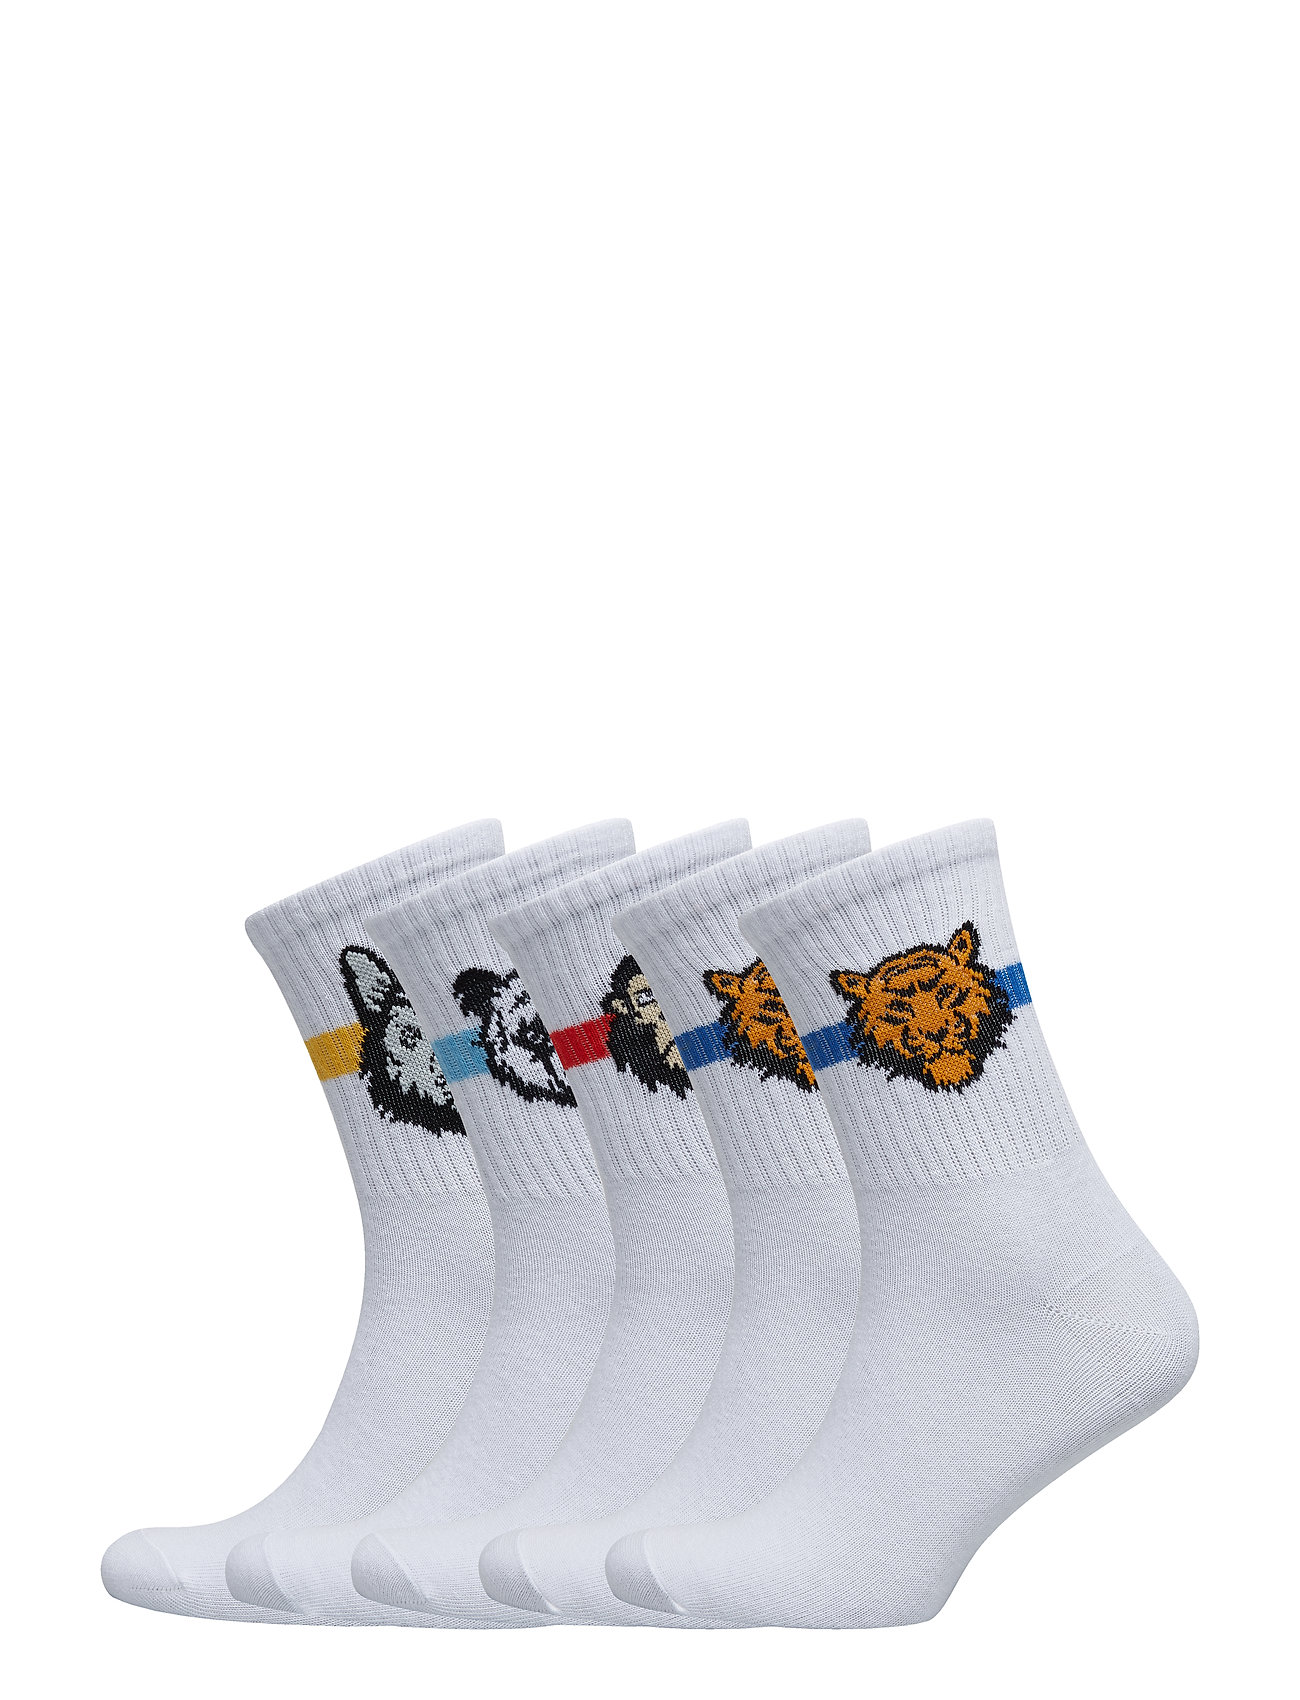 Image of Jacanimals Tennis Sock 5 Pack Junior (3122439649)